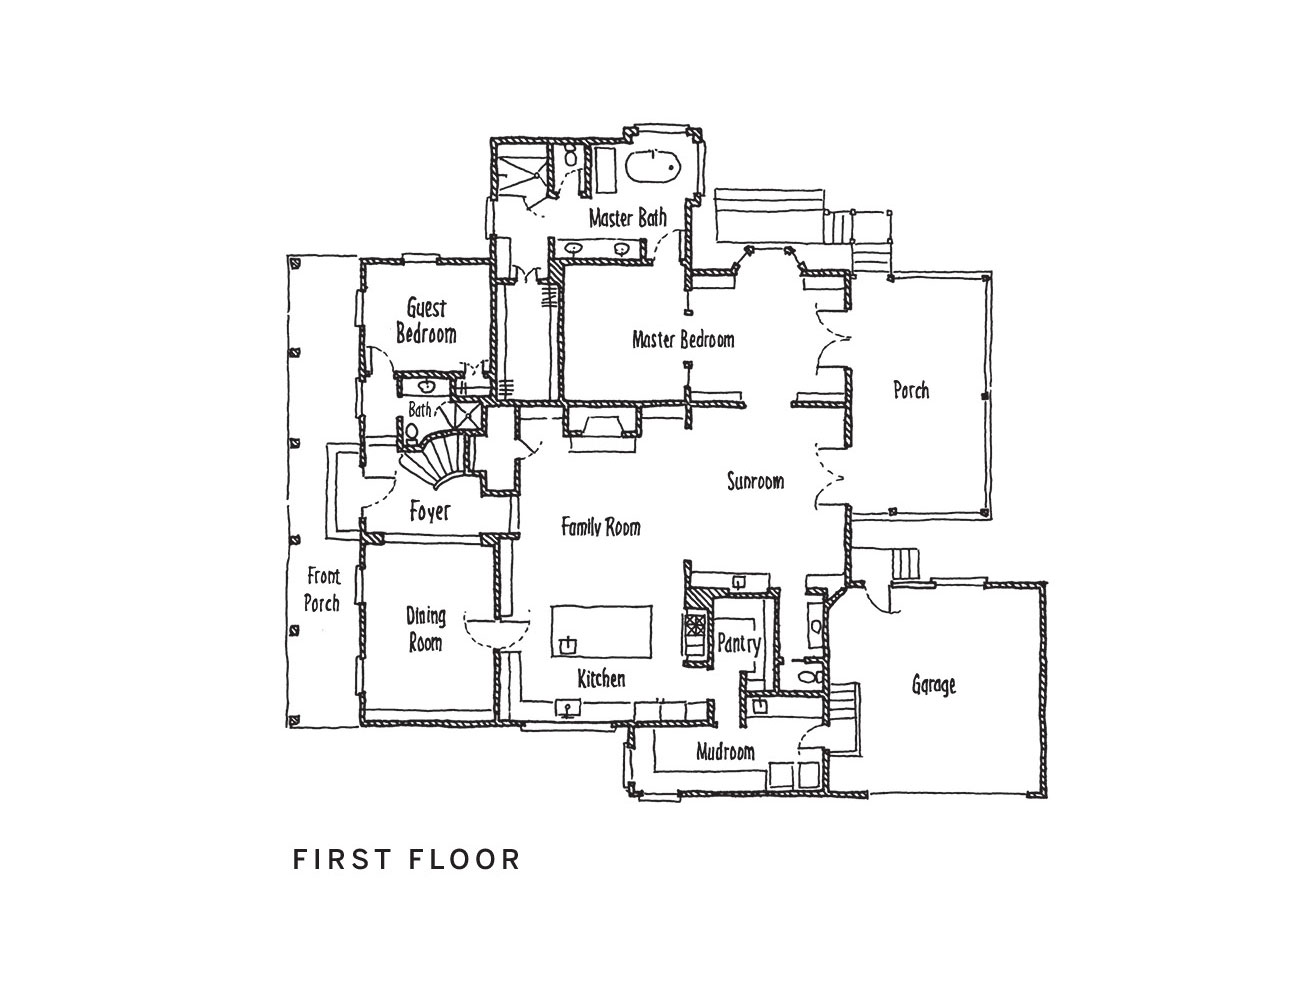 first-floor-idea-house-2018 Idea House Southern Living Plans Sl on southern dog trot house design, dog trot house plans, sunset idea house plans, colonial southern house plans, american colonial house plans, southern living garden ideas, cottage living house plans, georgian style house plans, simple house plans, southern living room ideas, small house plans, outdoor living plans, southern living homes, narrow lot house plans, modern contemporary style house plans, southern oklahoma house, english cottage style house plans,